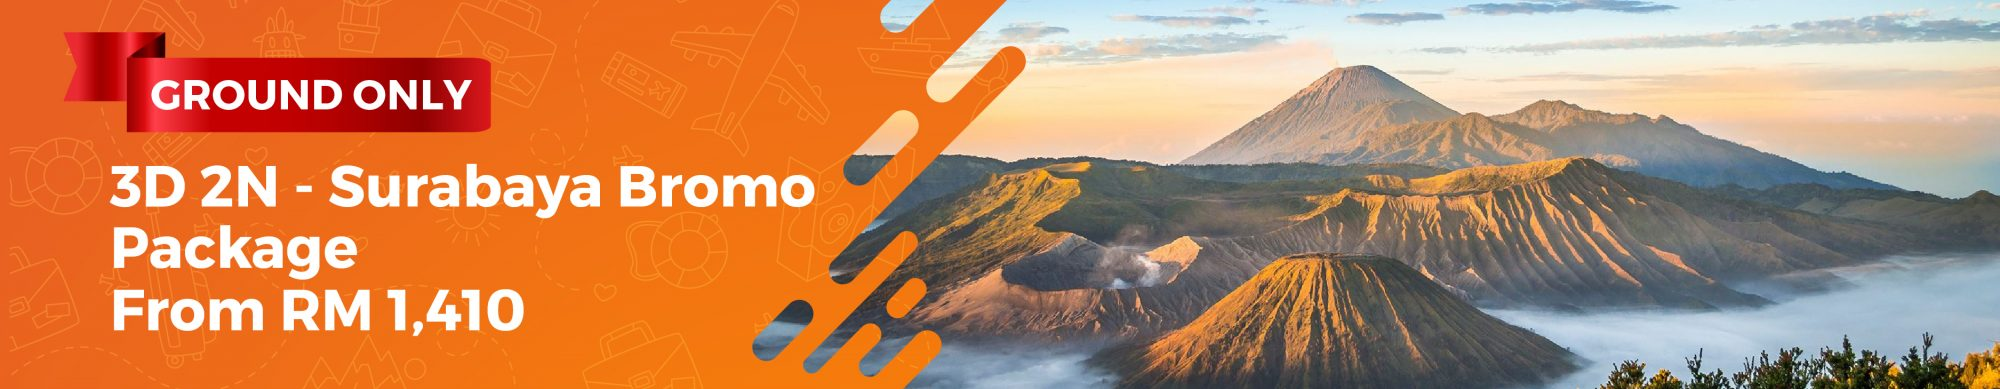 Indonesia Surabaya Bromo Package 3d2n Deliver Travel Tours Sdn Bhd